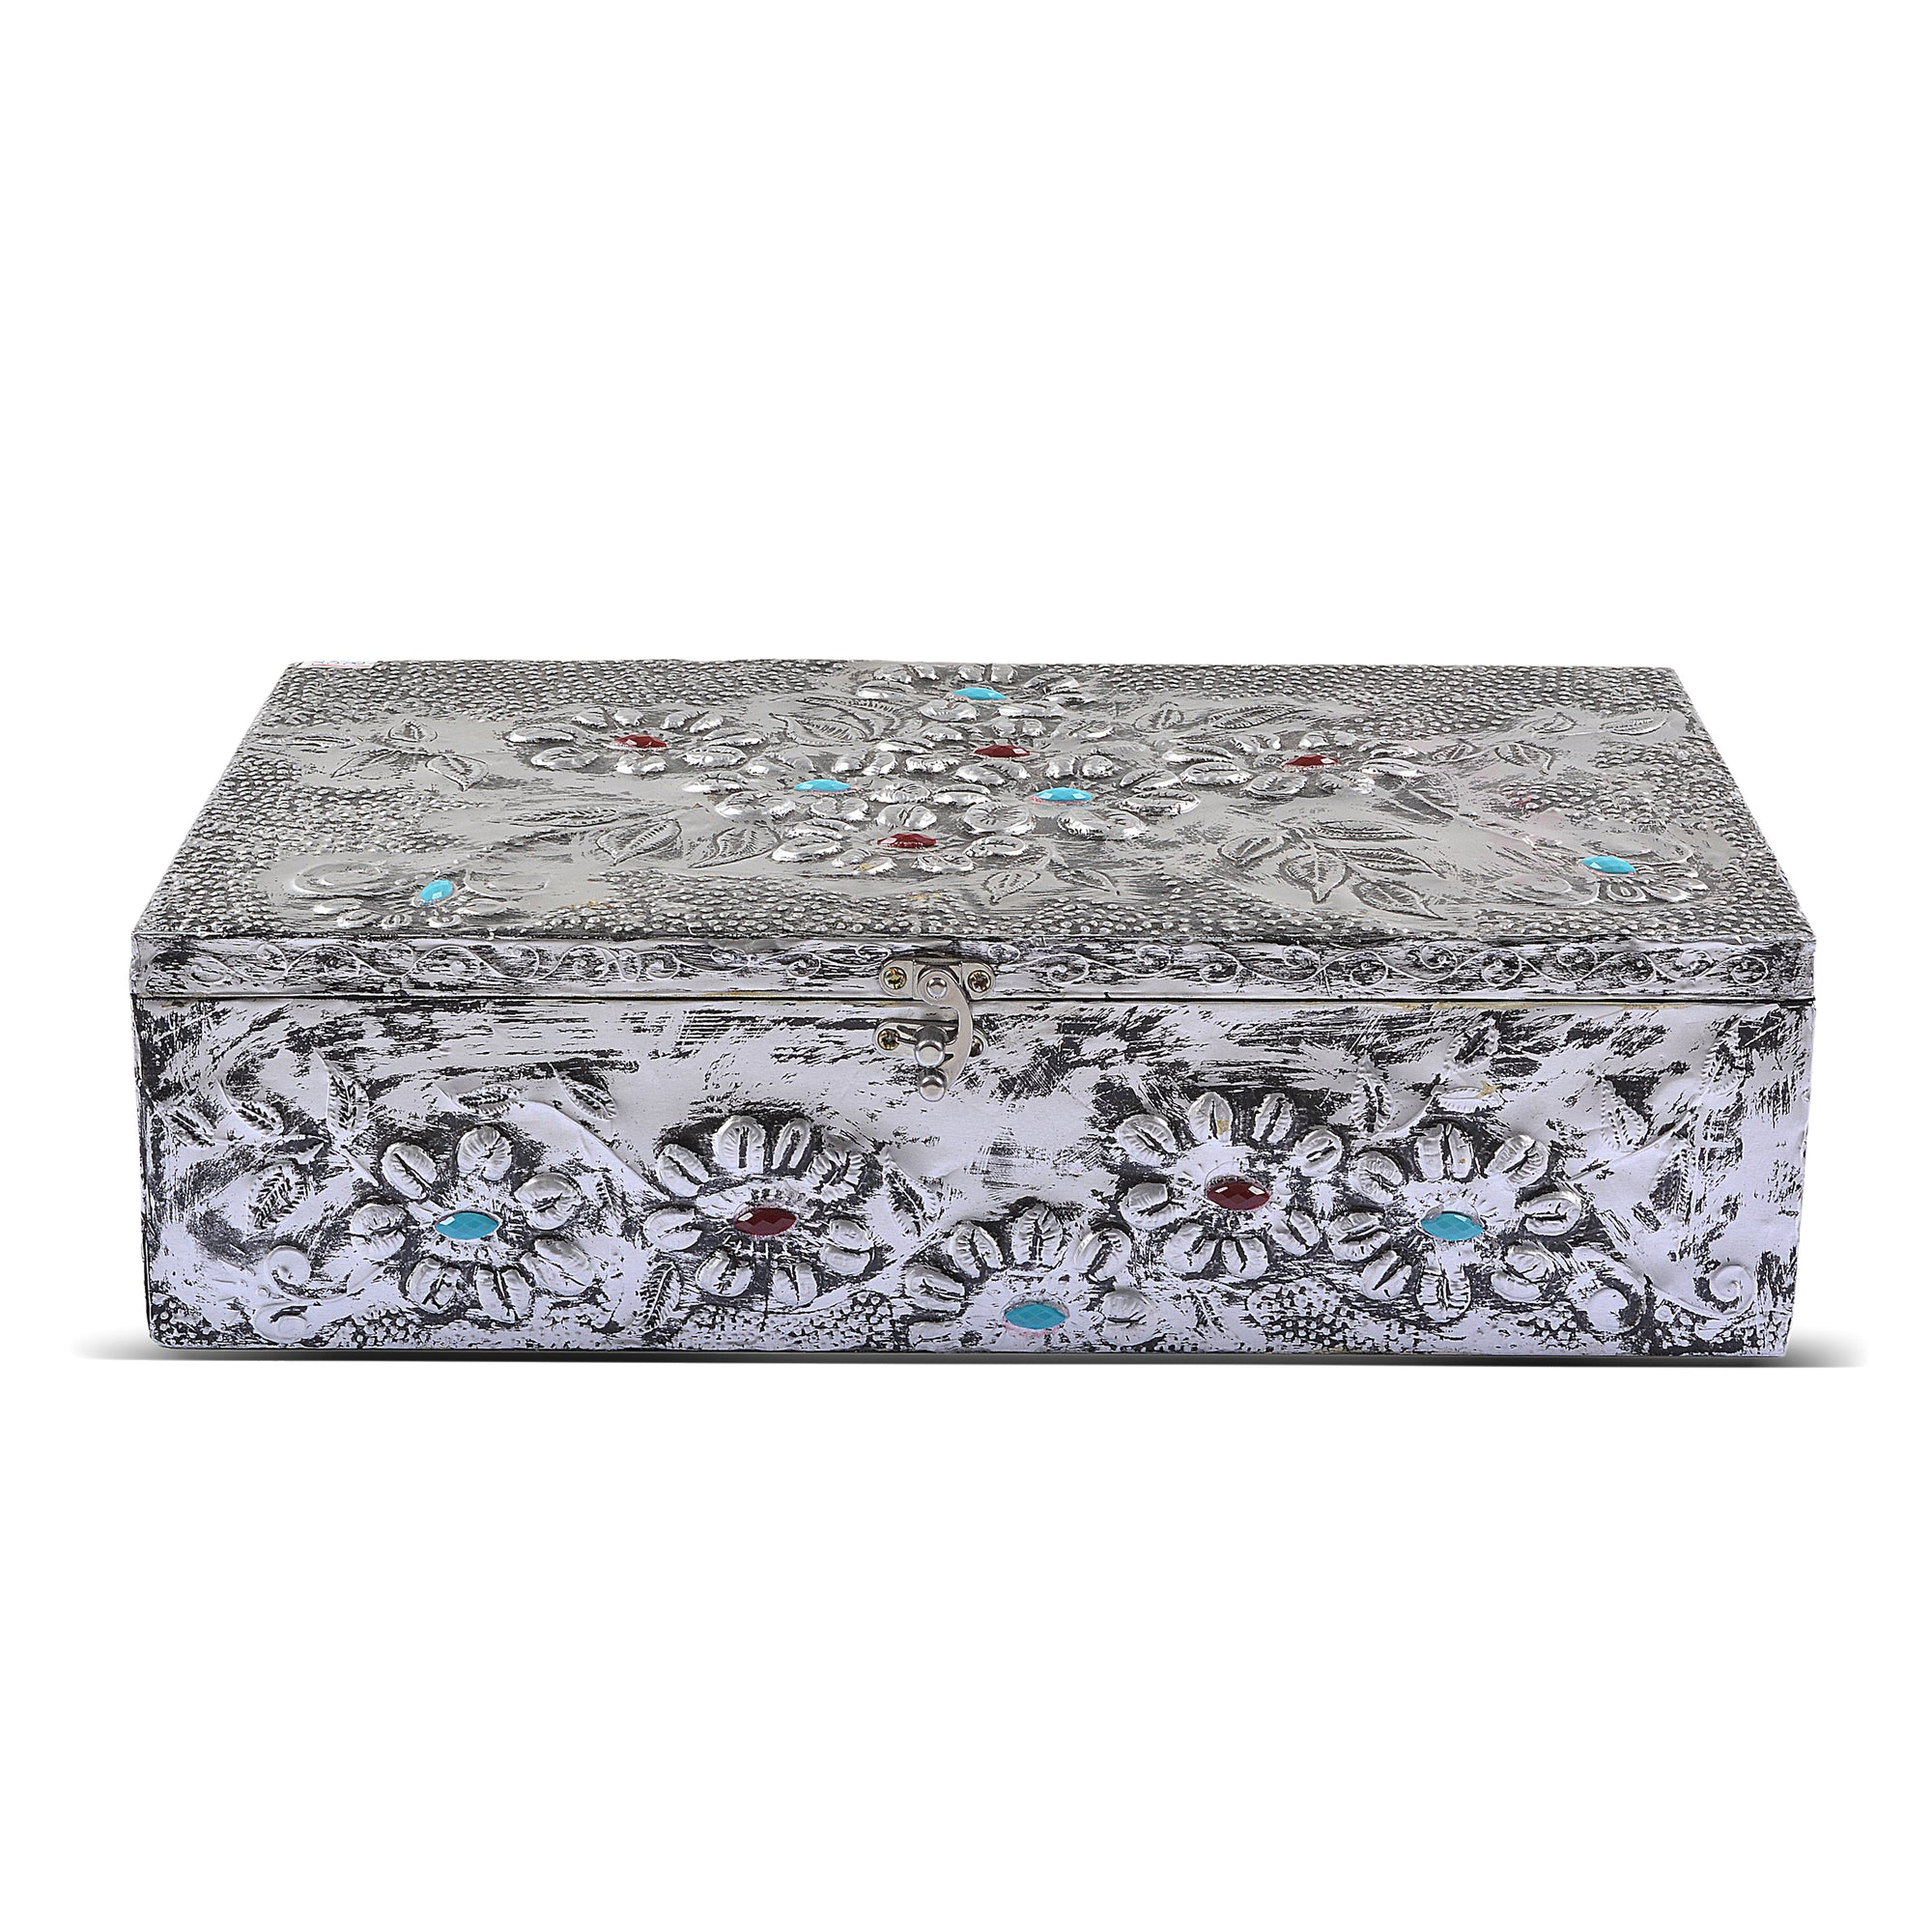 Hand-Made Aluminium Foil Jewelry Box